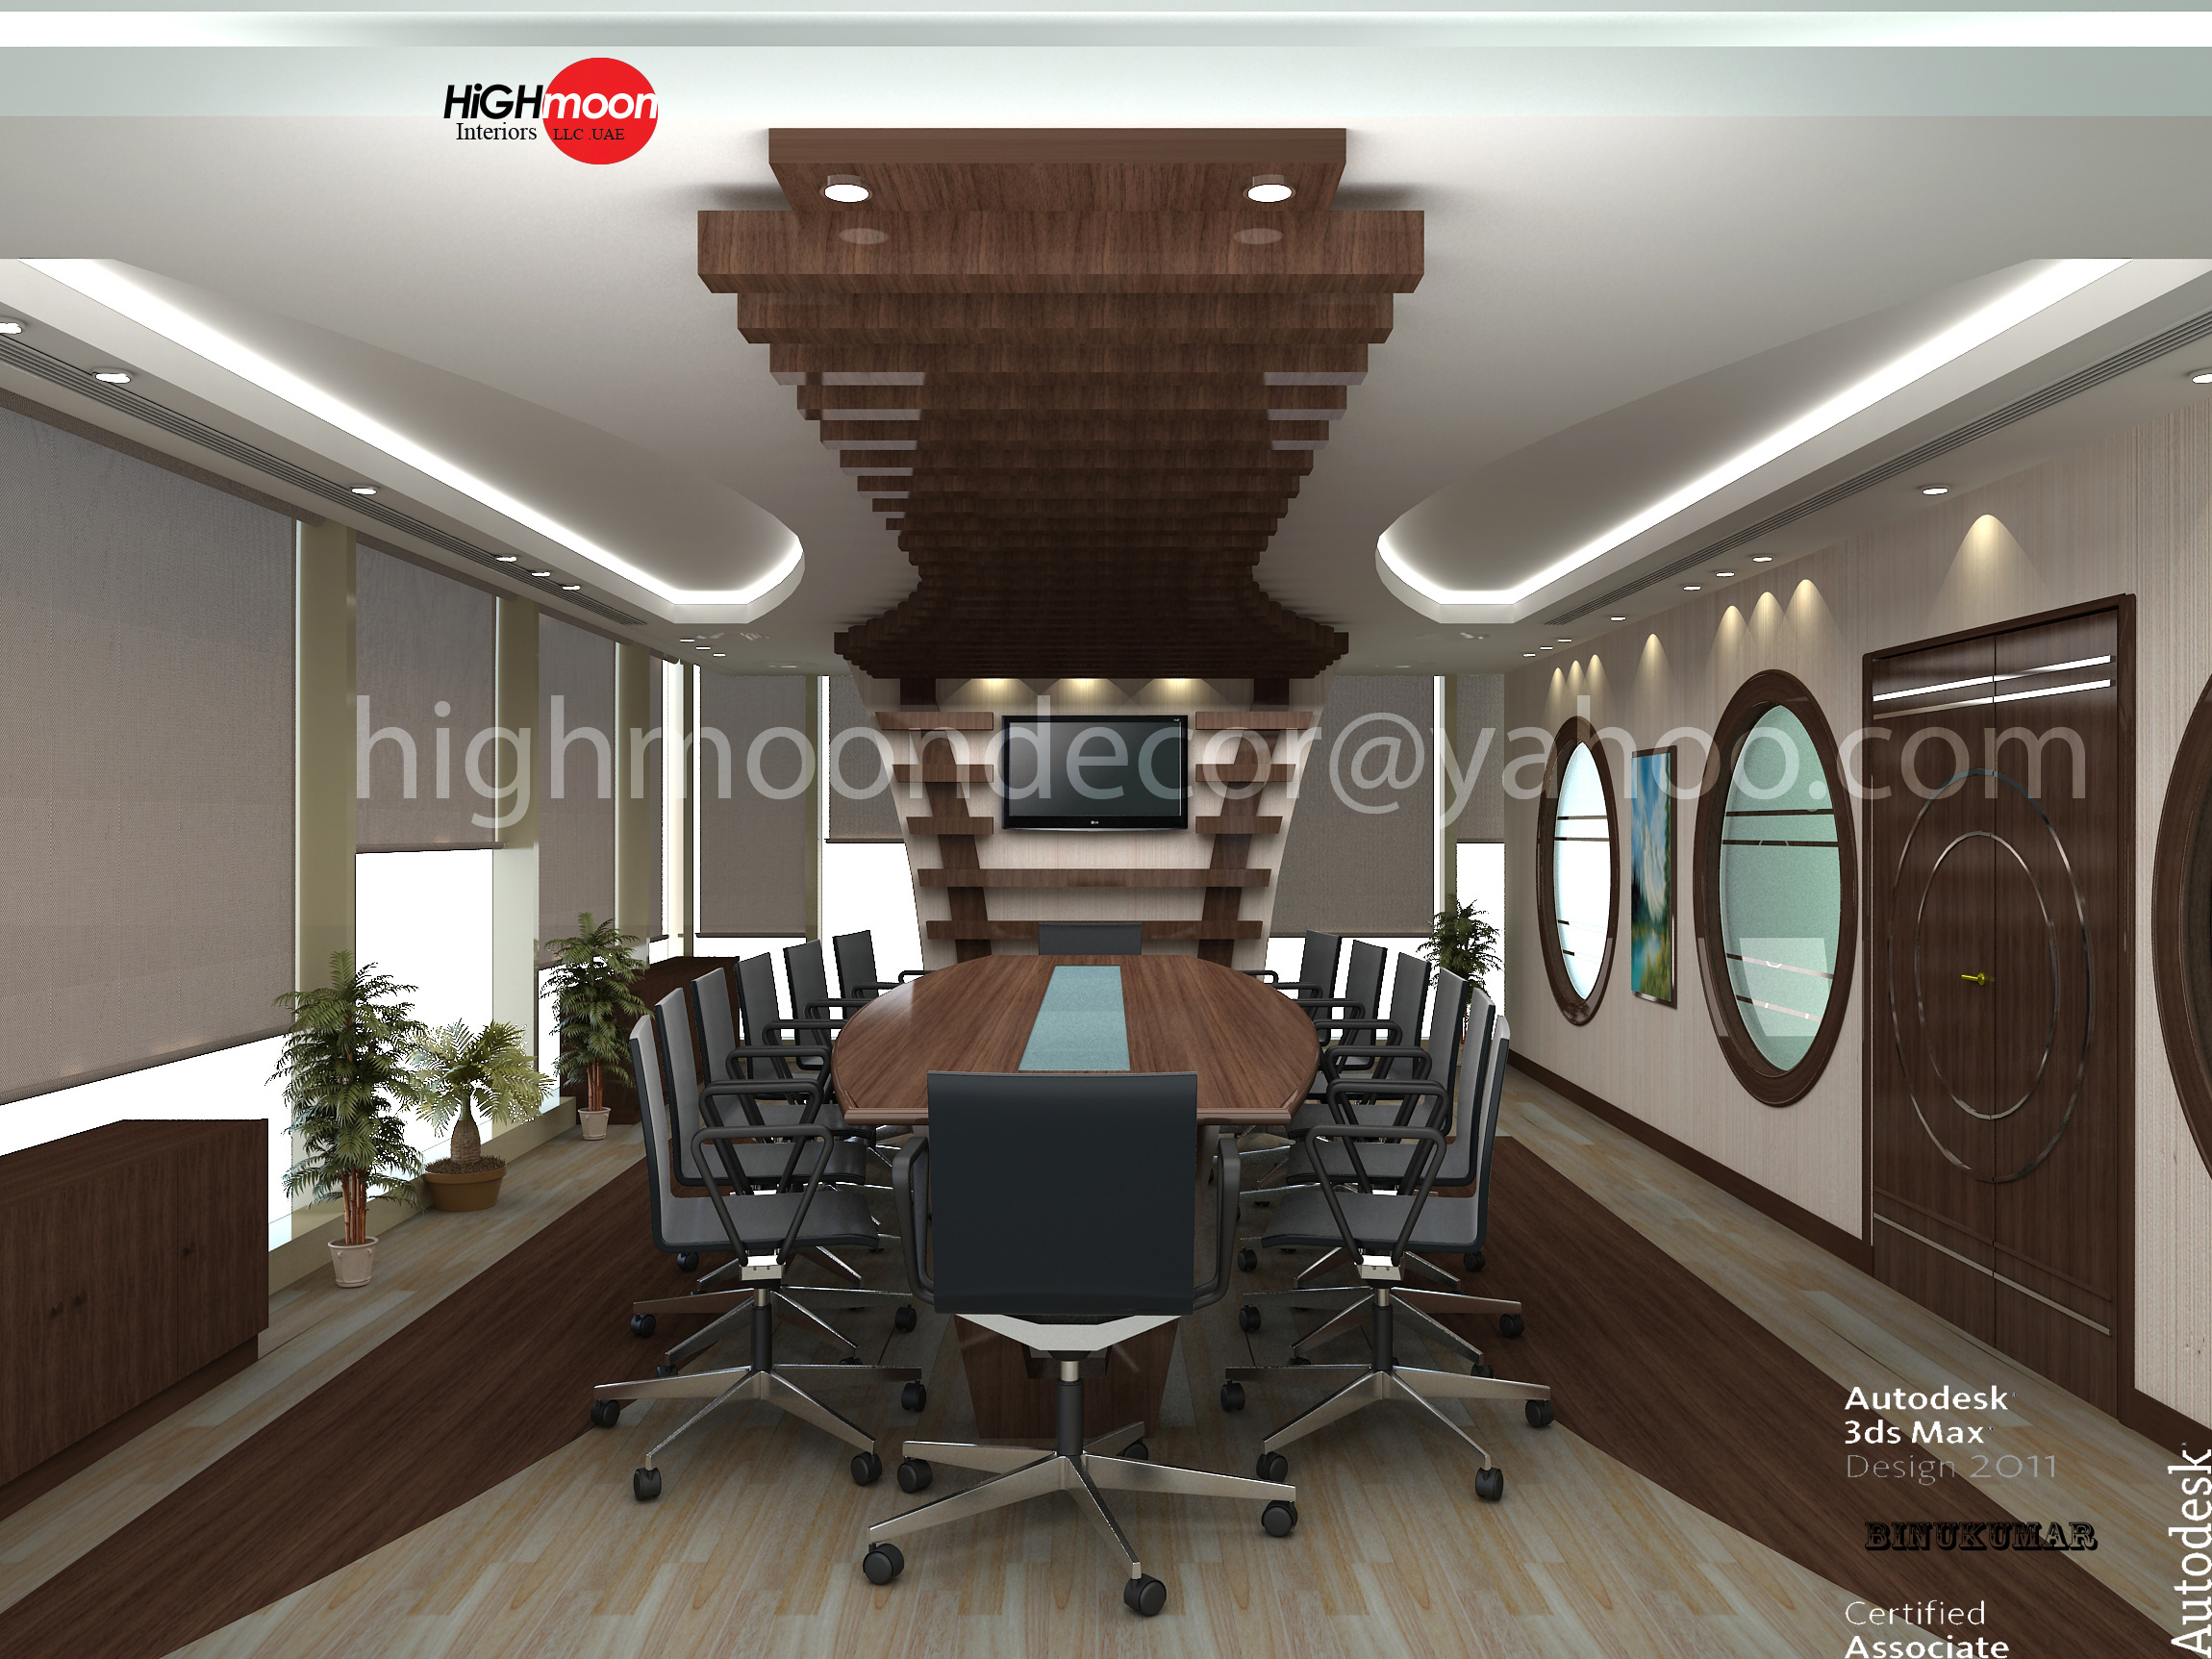 room design office decorating conference false ceiling. interior designer decorating tips room design office conference false ceiling s